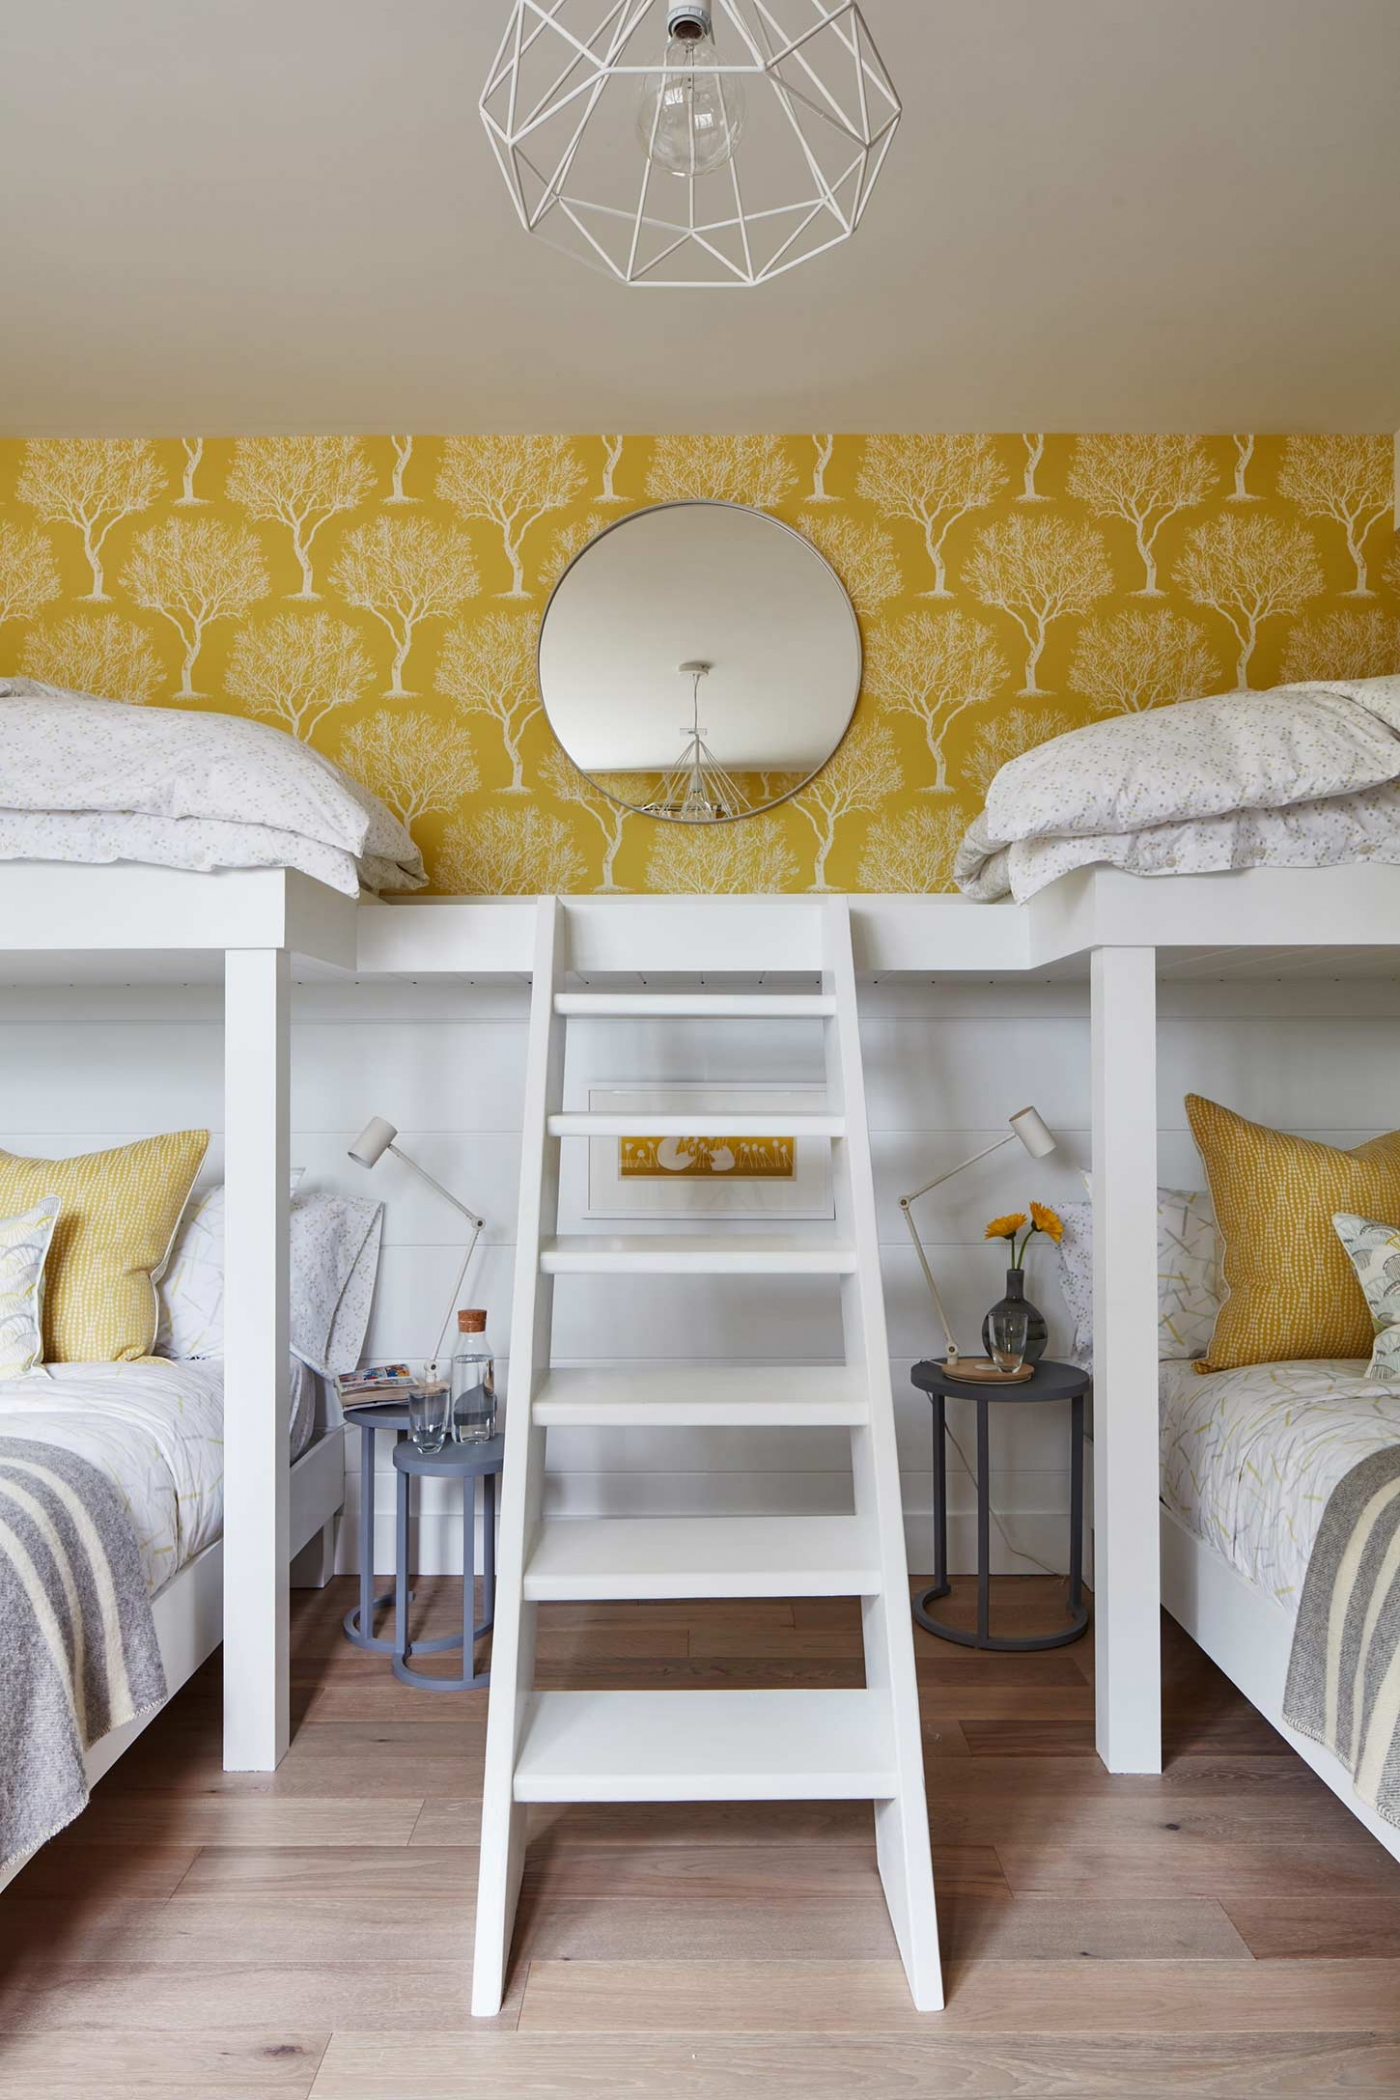 Stairs to bunkbeds in cottage style bunk room by Sarah Richardson